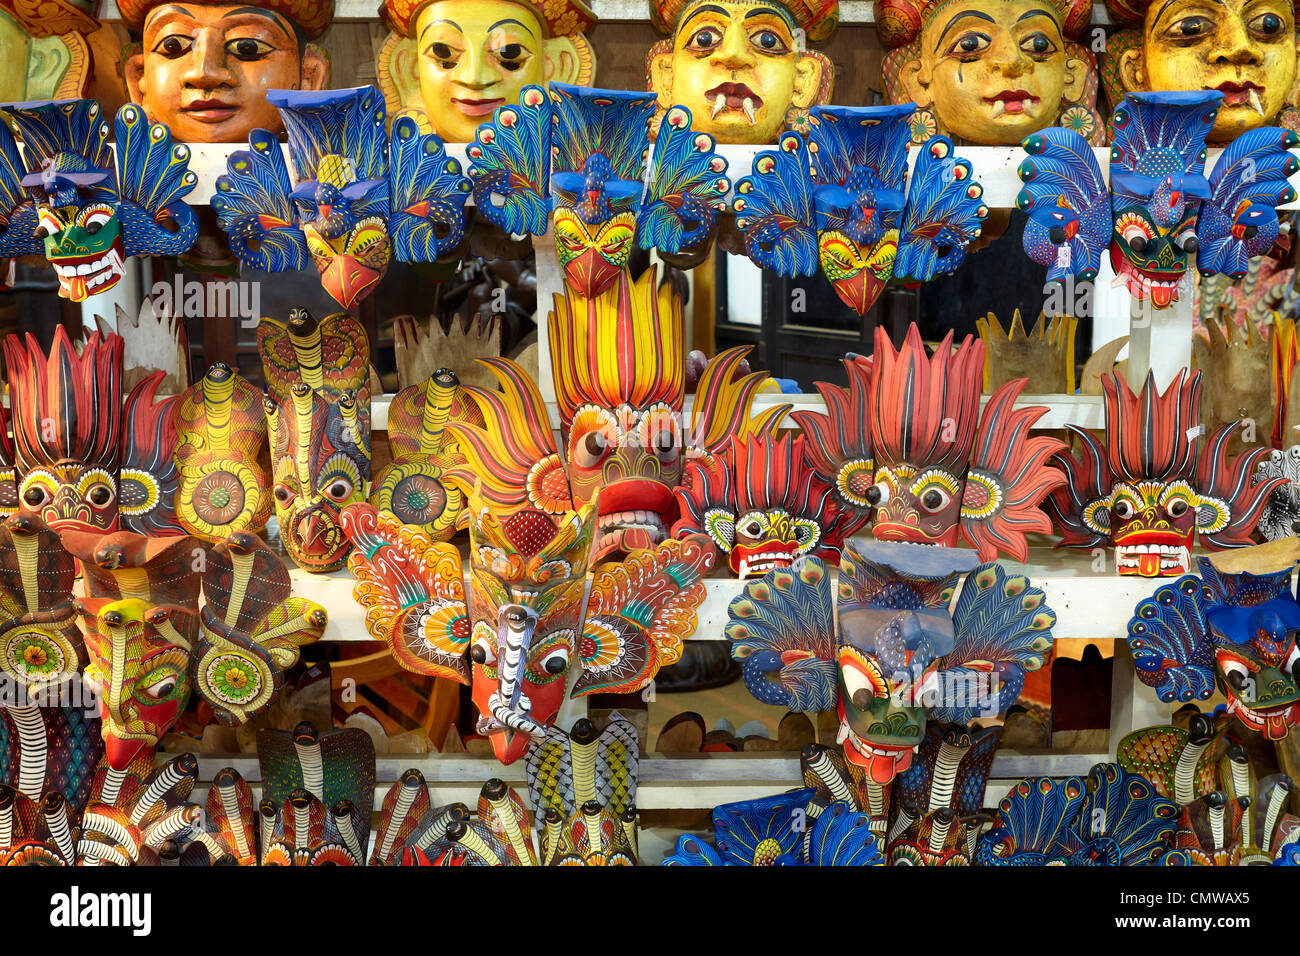 Sri Lanka - traditional wood carving, shop with traditional painting mask - Stock Image